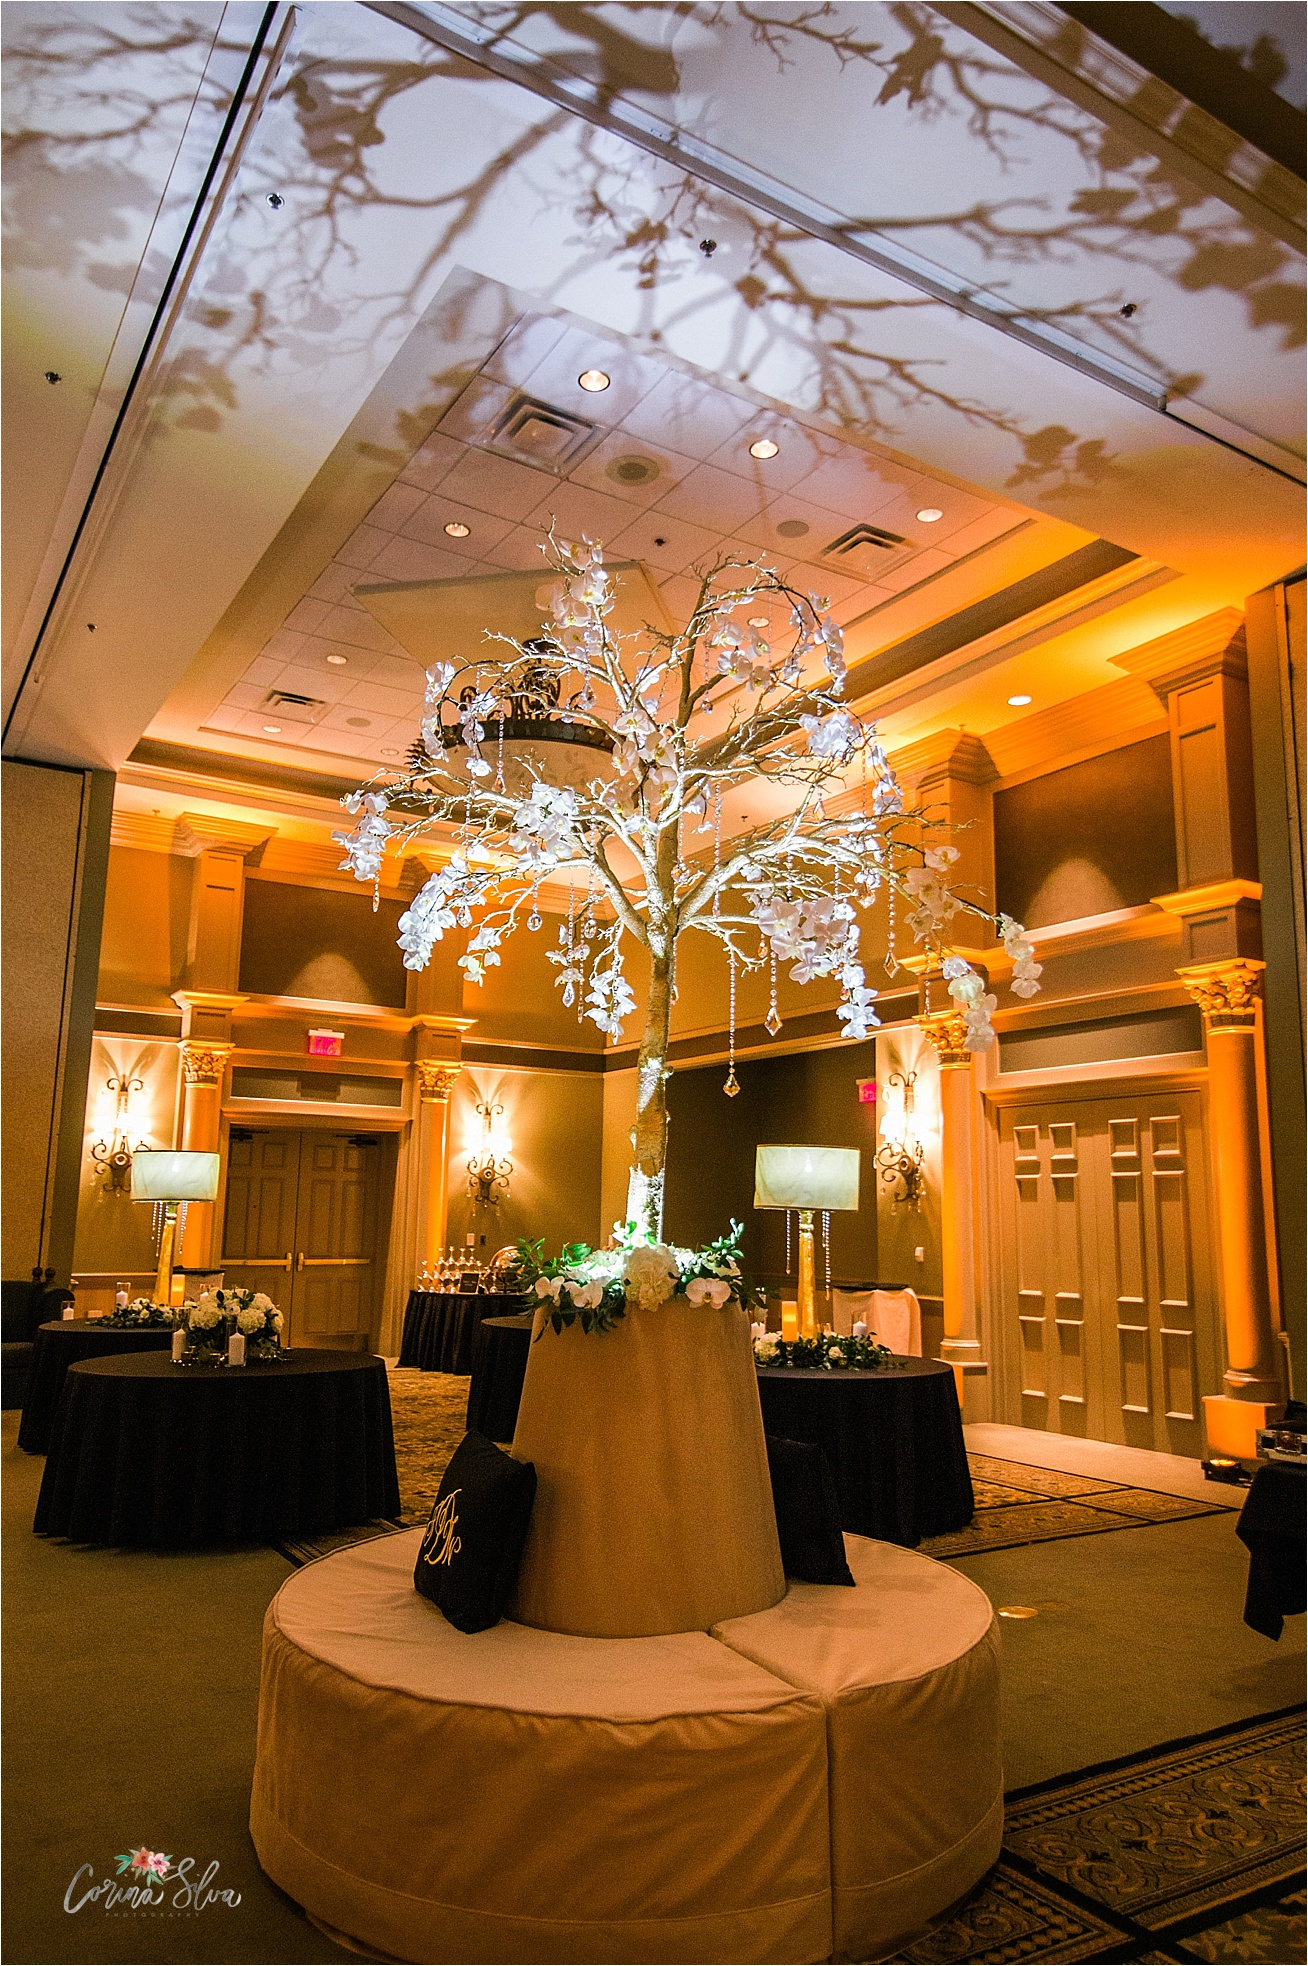 RSG-Event-and-Designs-luxury-wedding-decor-photos, Corina-Silva-Studios_0020.jpg